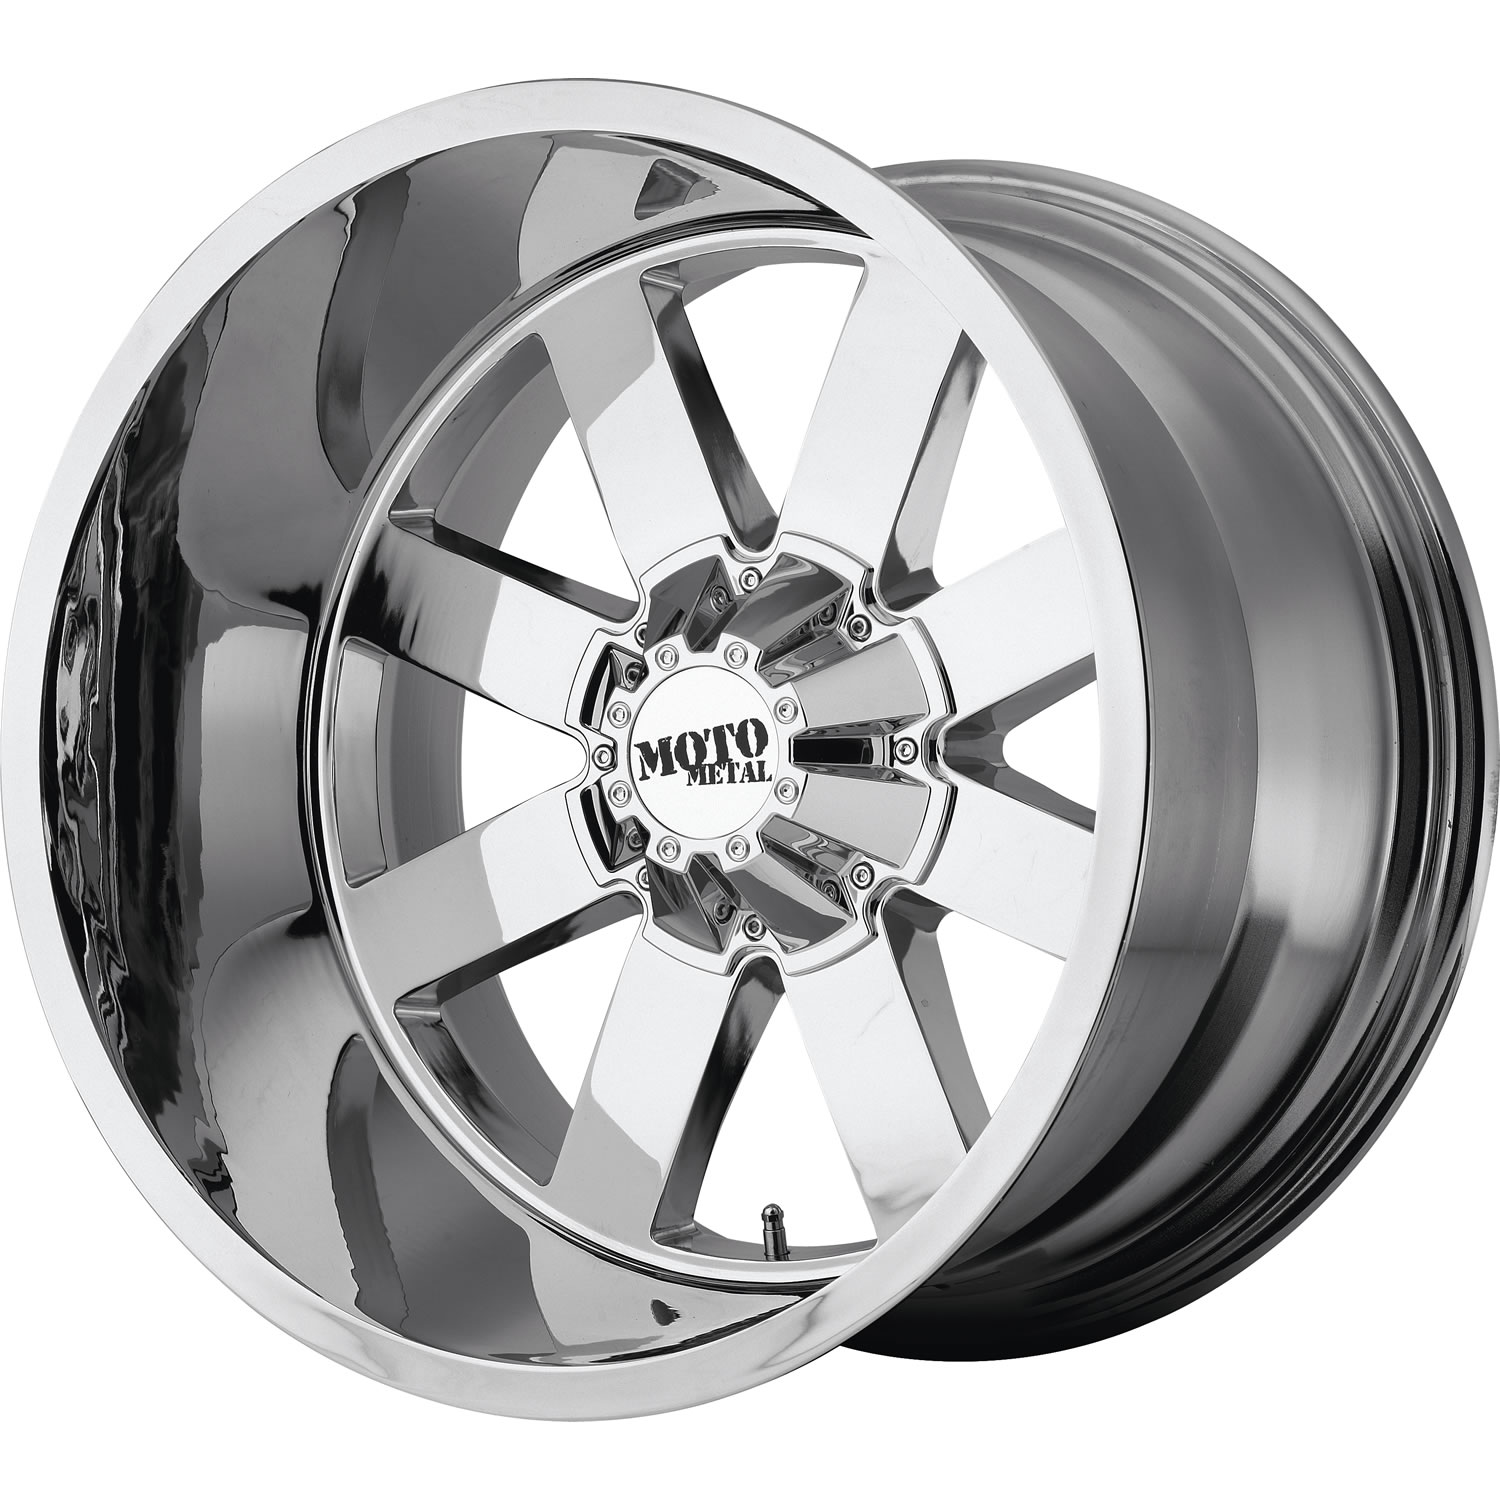 Moto Metal Mo962 17x10 24 Custom Wheels